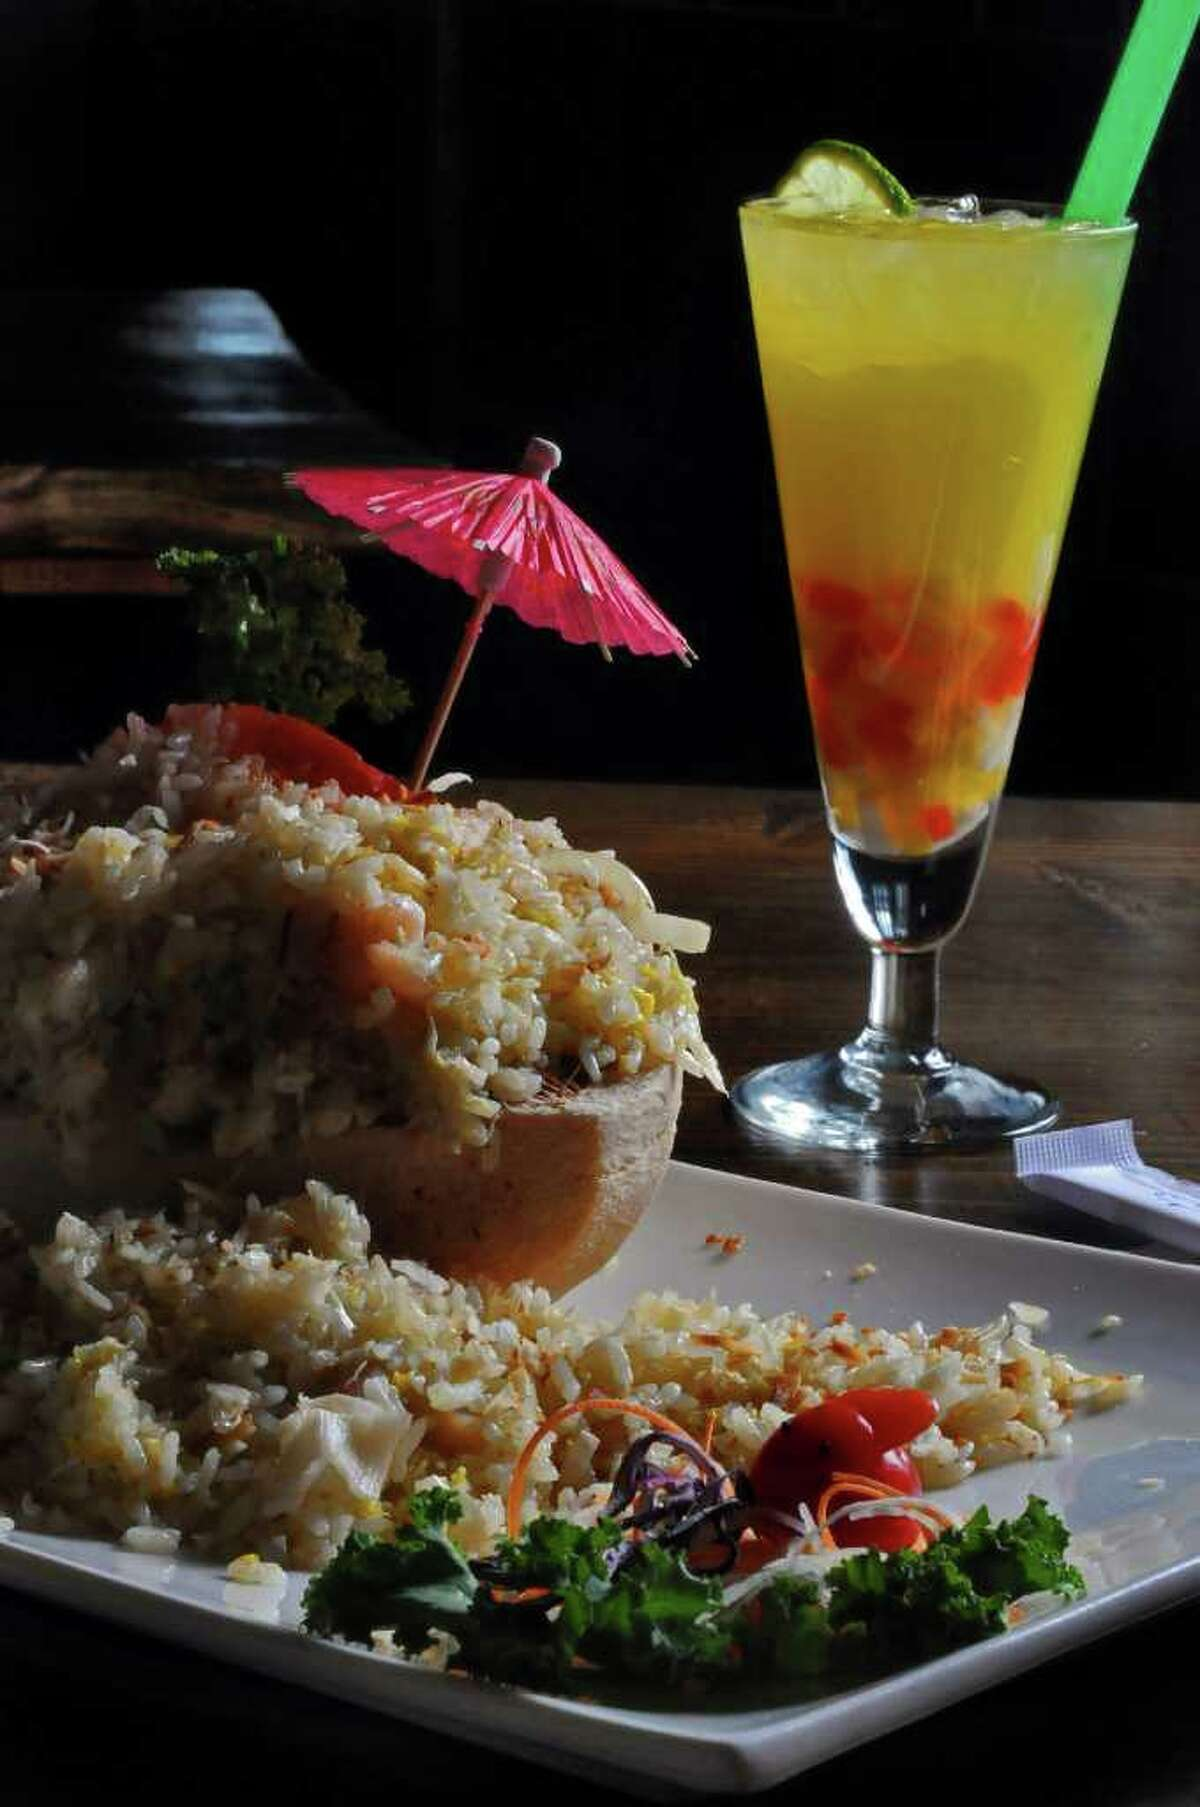 Seafood Coconut Fried Rice, and a Mango Yogurt with Mixed Fruit Jelly, drink at right, at Ruby Asian Bistro on Madison Avenue on Monday April 18, 2011 in Albany, NY. ( Philip Kamrass / Times Union )